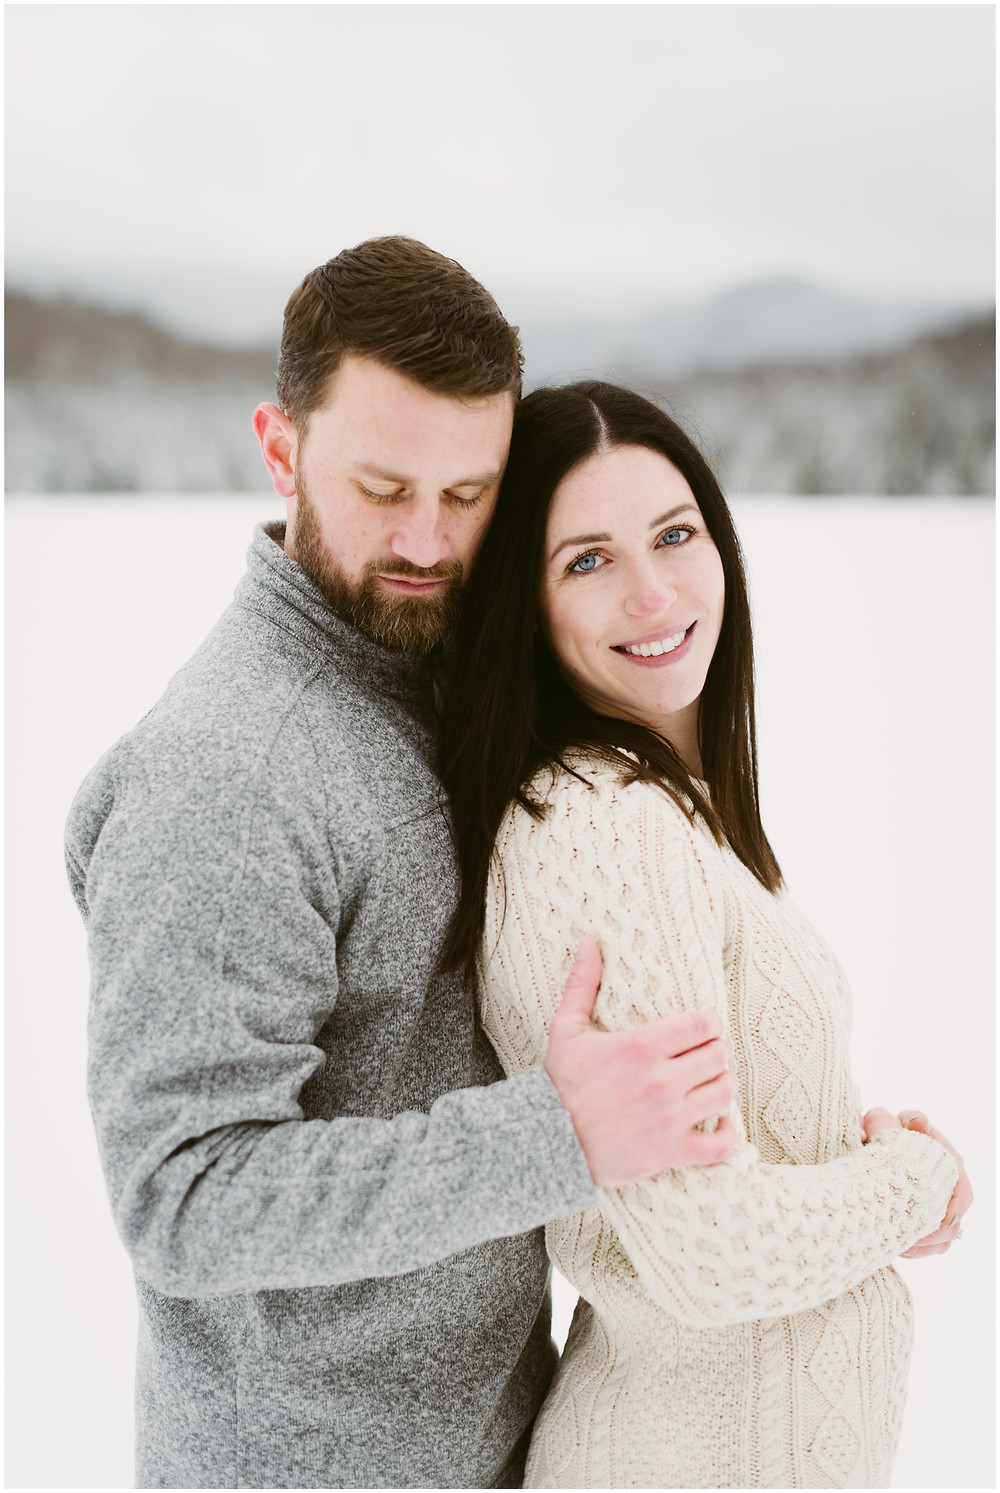 An Adirondack engagement session in the snow at the Adirondack Mountain Club by Mountainaire Gatherings